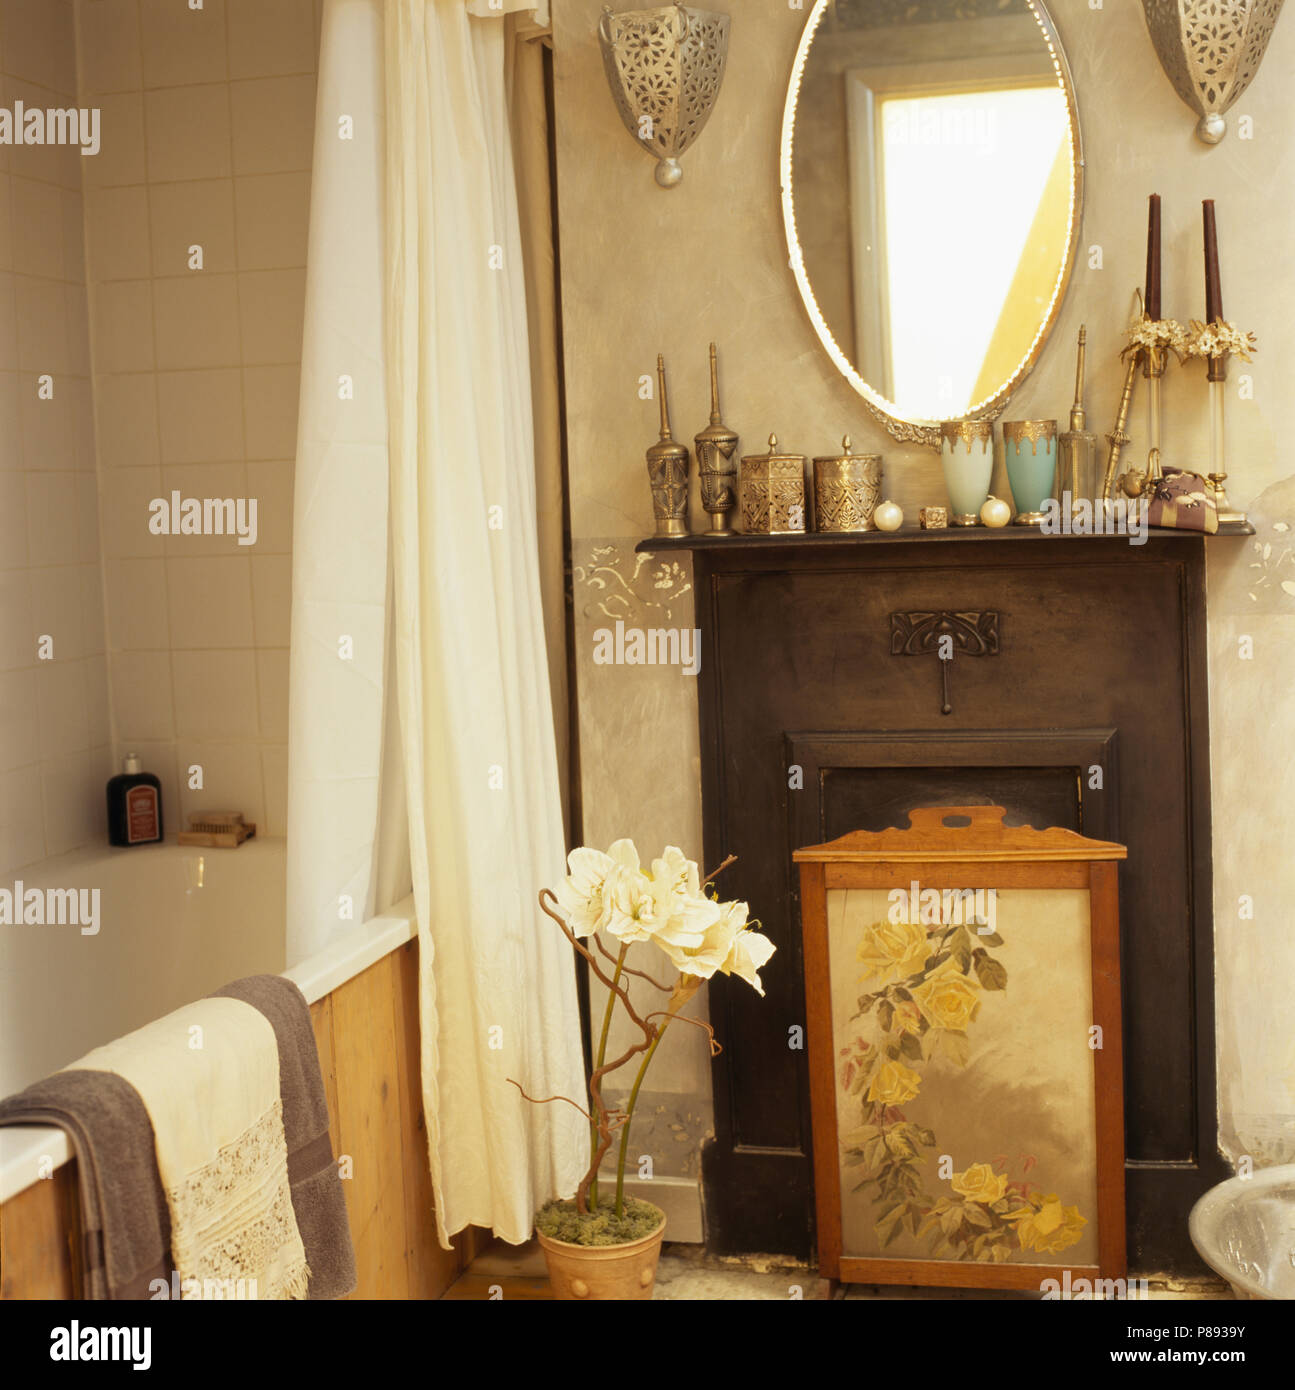 Oval Mirror Above Small Cast Iron Fireplace With Victorian Firescreen In Bathroom Shower Curtain Bath